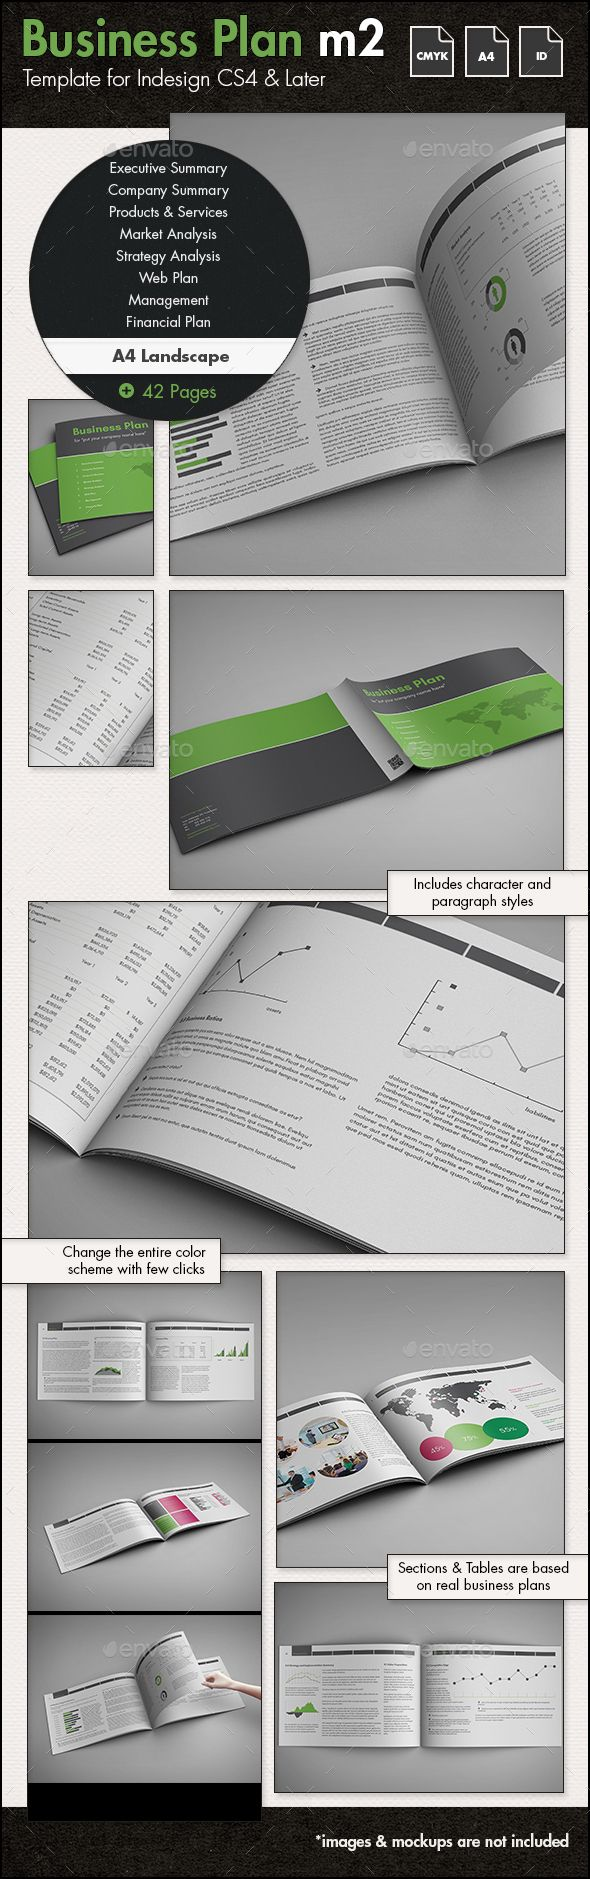 Business Plan Template m2 A4 Landscape